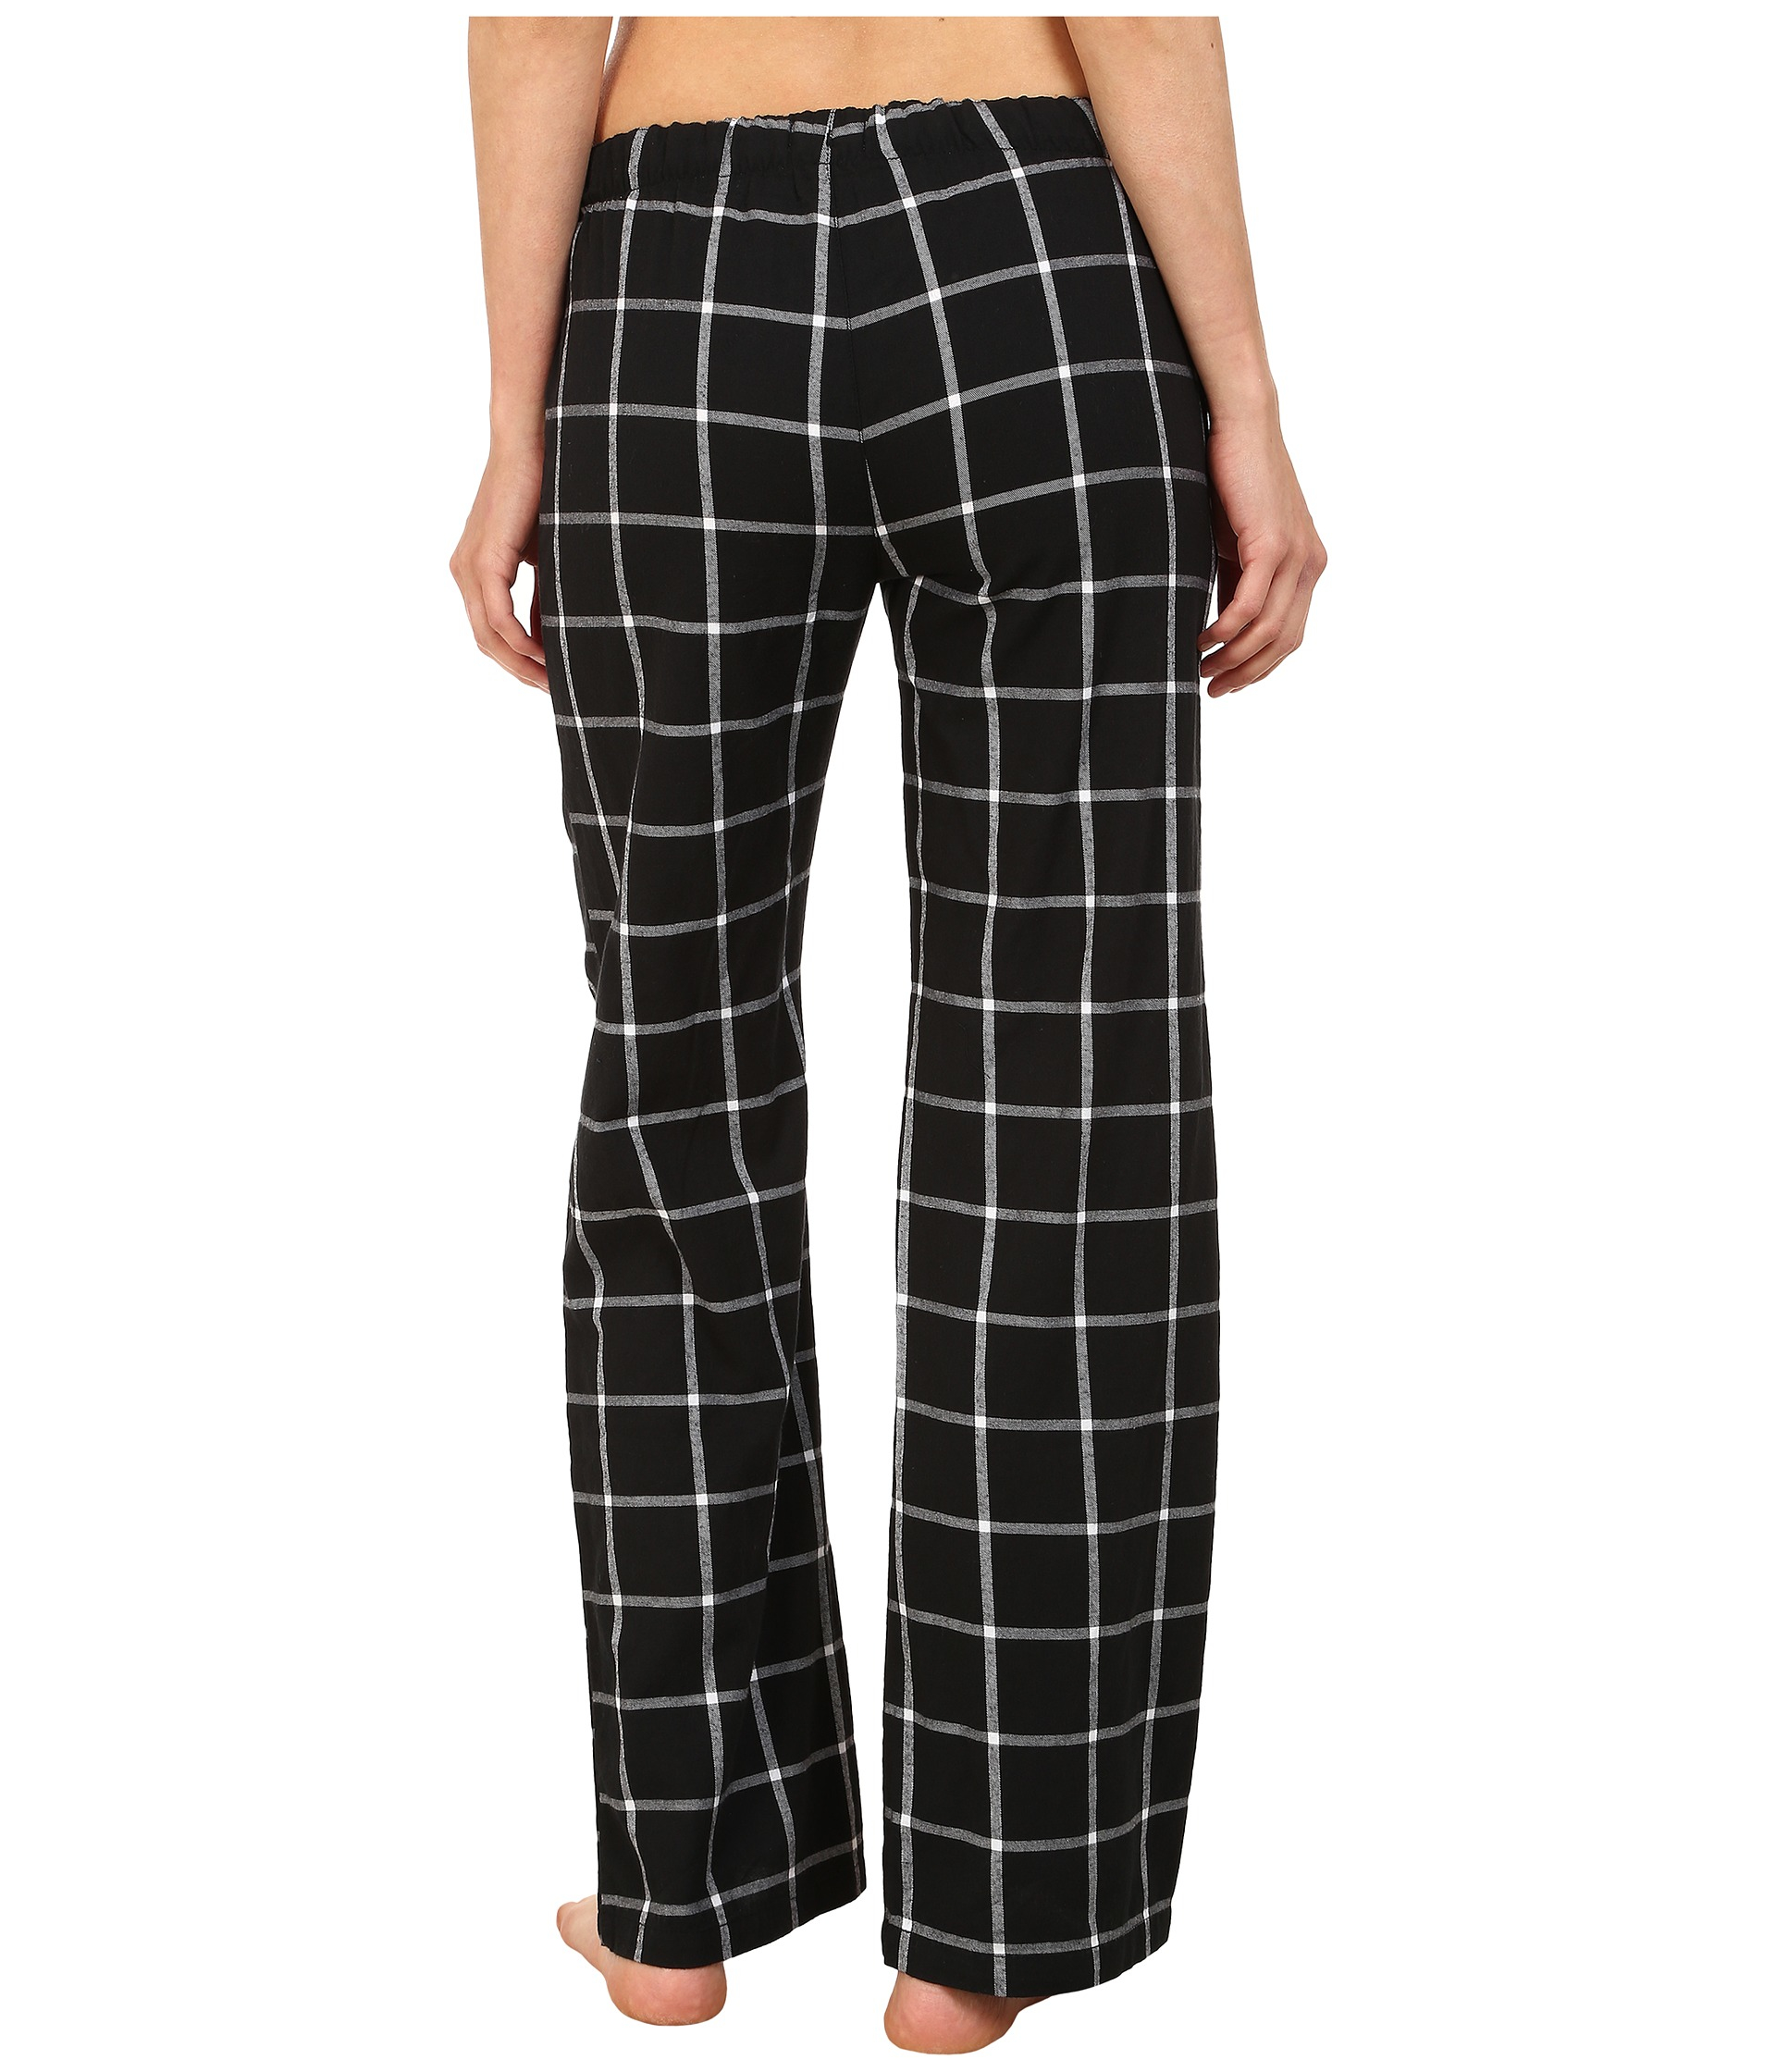 f54718e2e6a Lyst - Pj Salvage Black N Blush Plaid Pajama Pants in Black